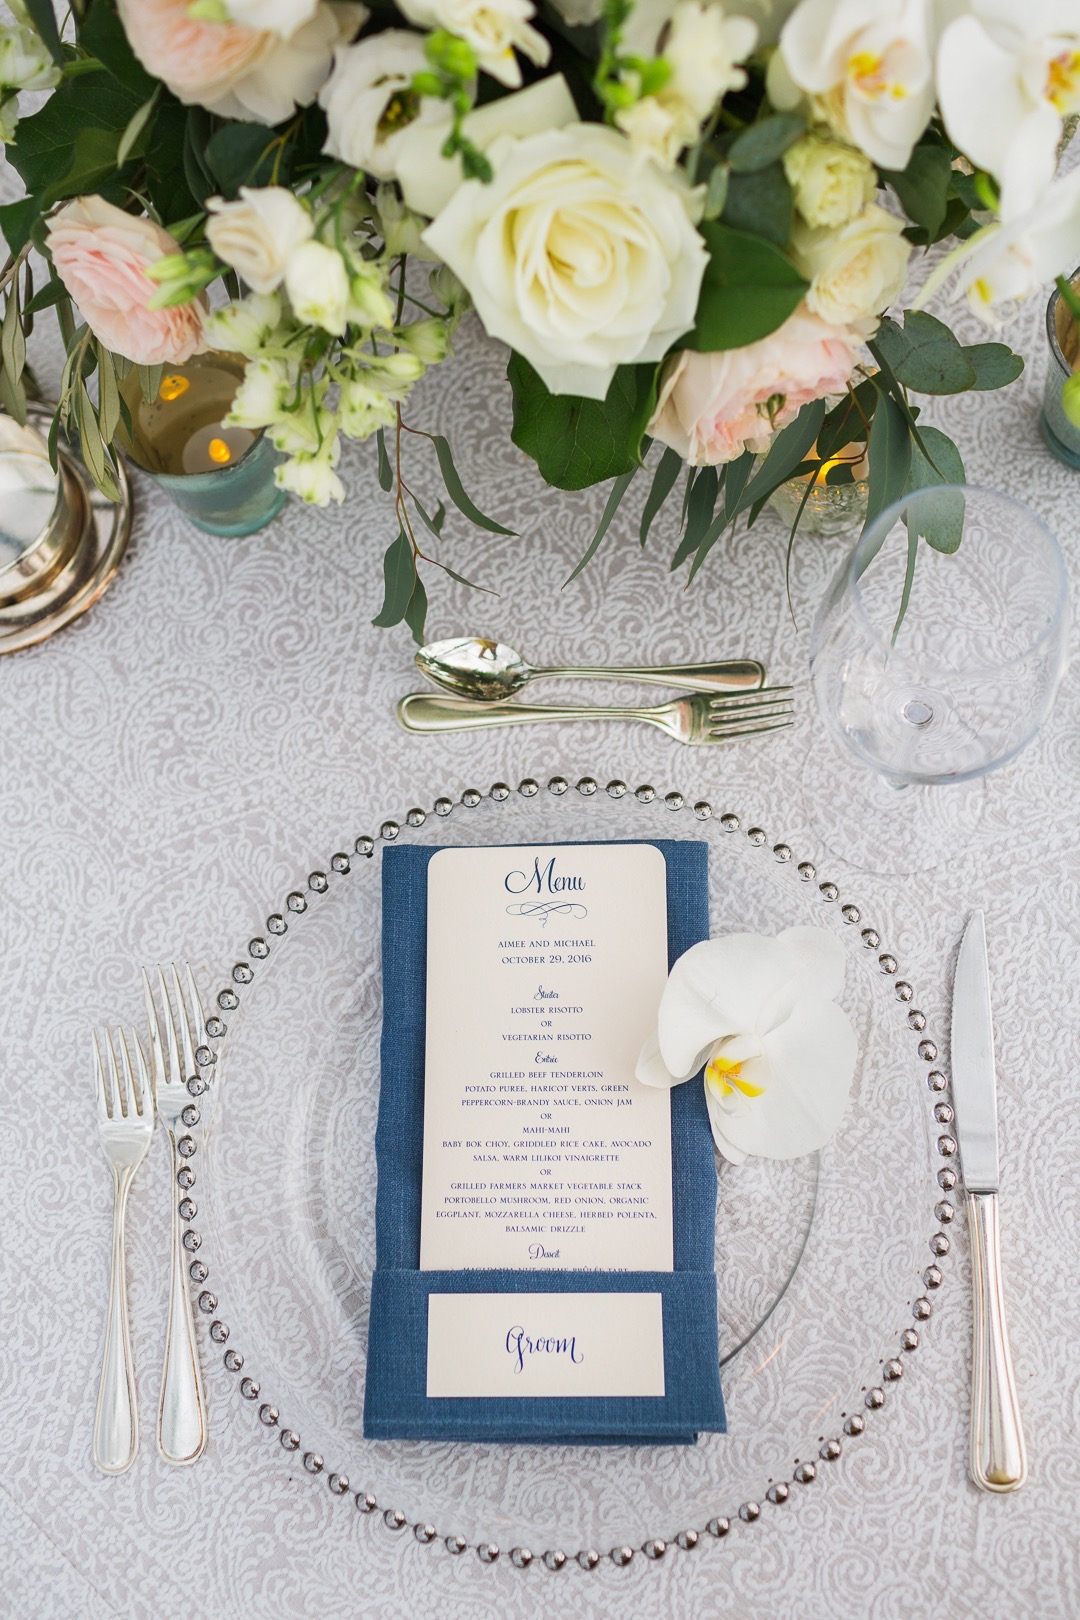 Silver Beaded Glass Chargers. Photo:  Sea Light Studios |Decor  Bliss In Bloom